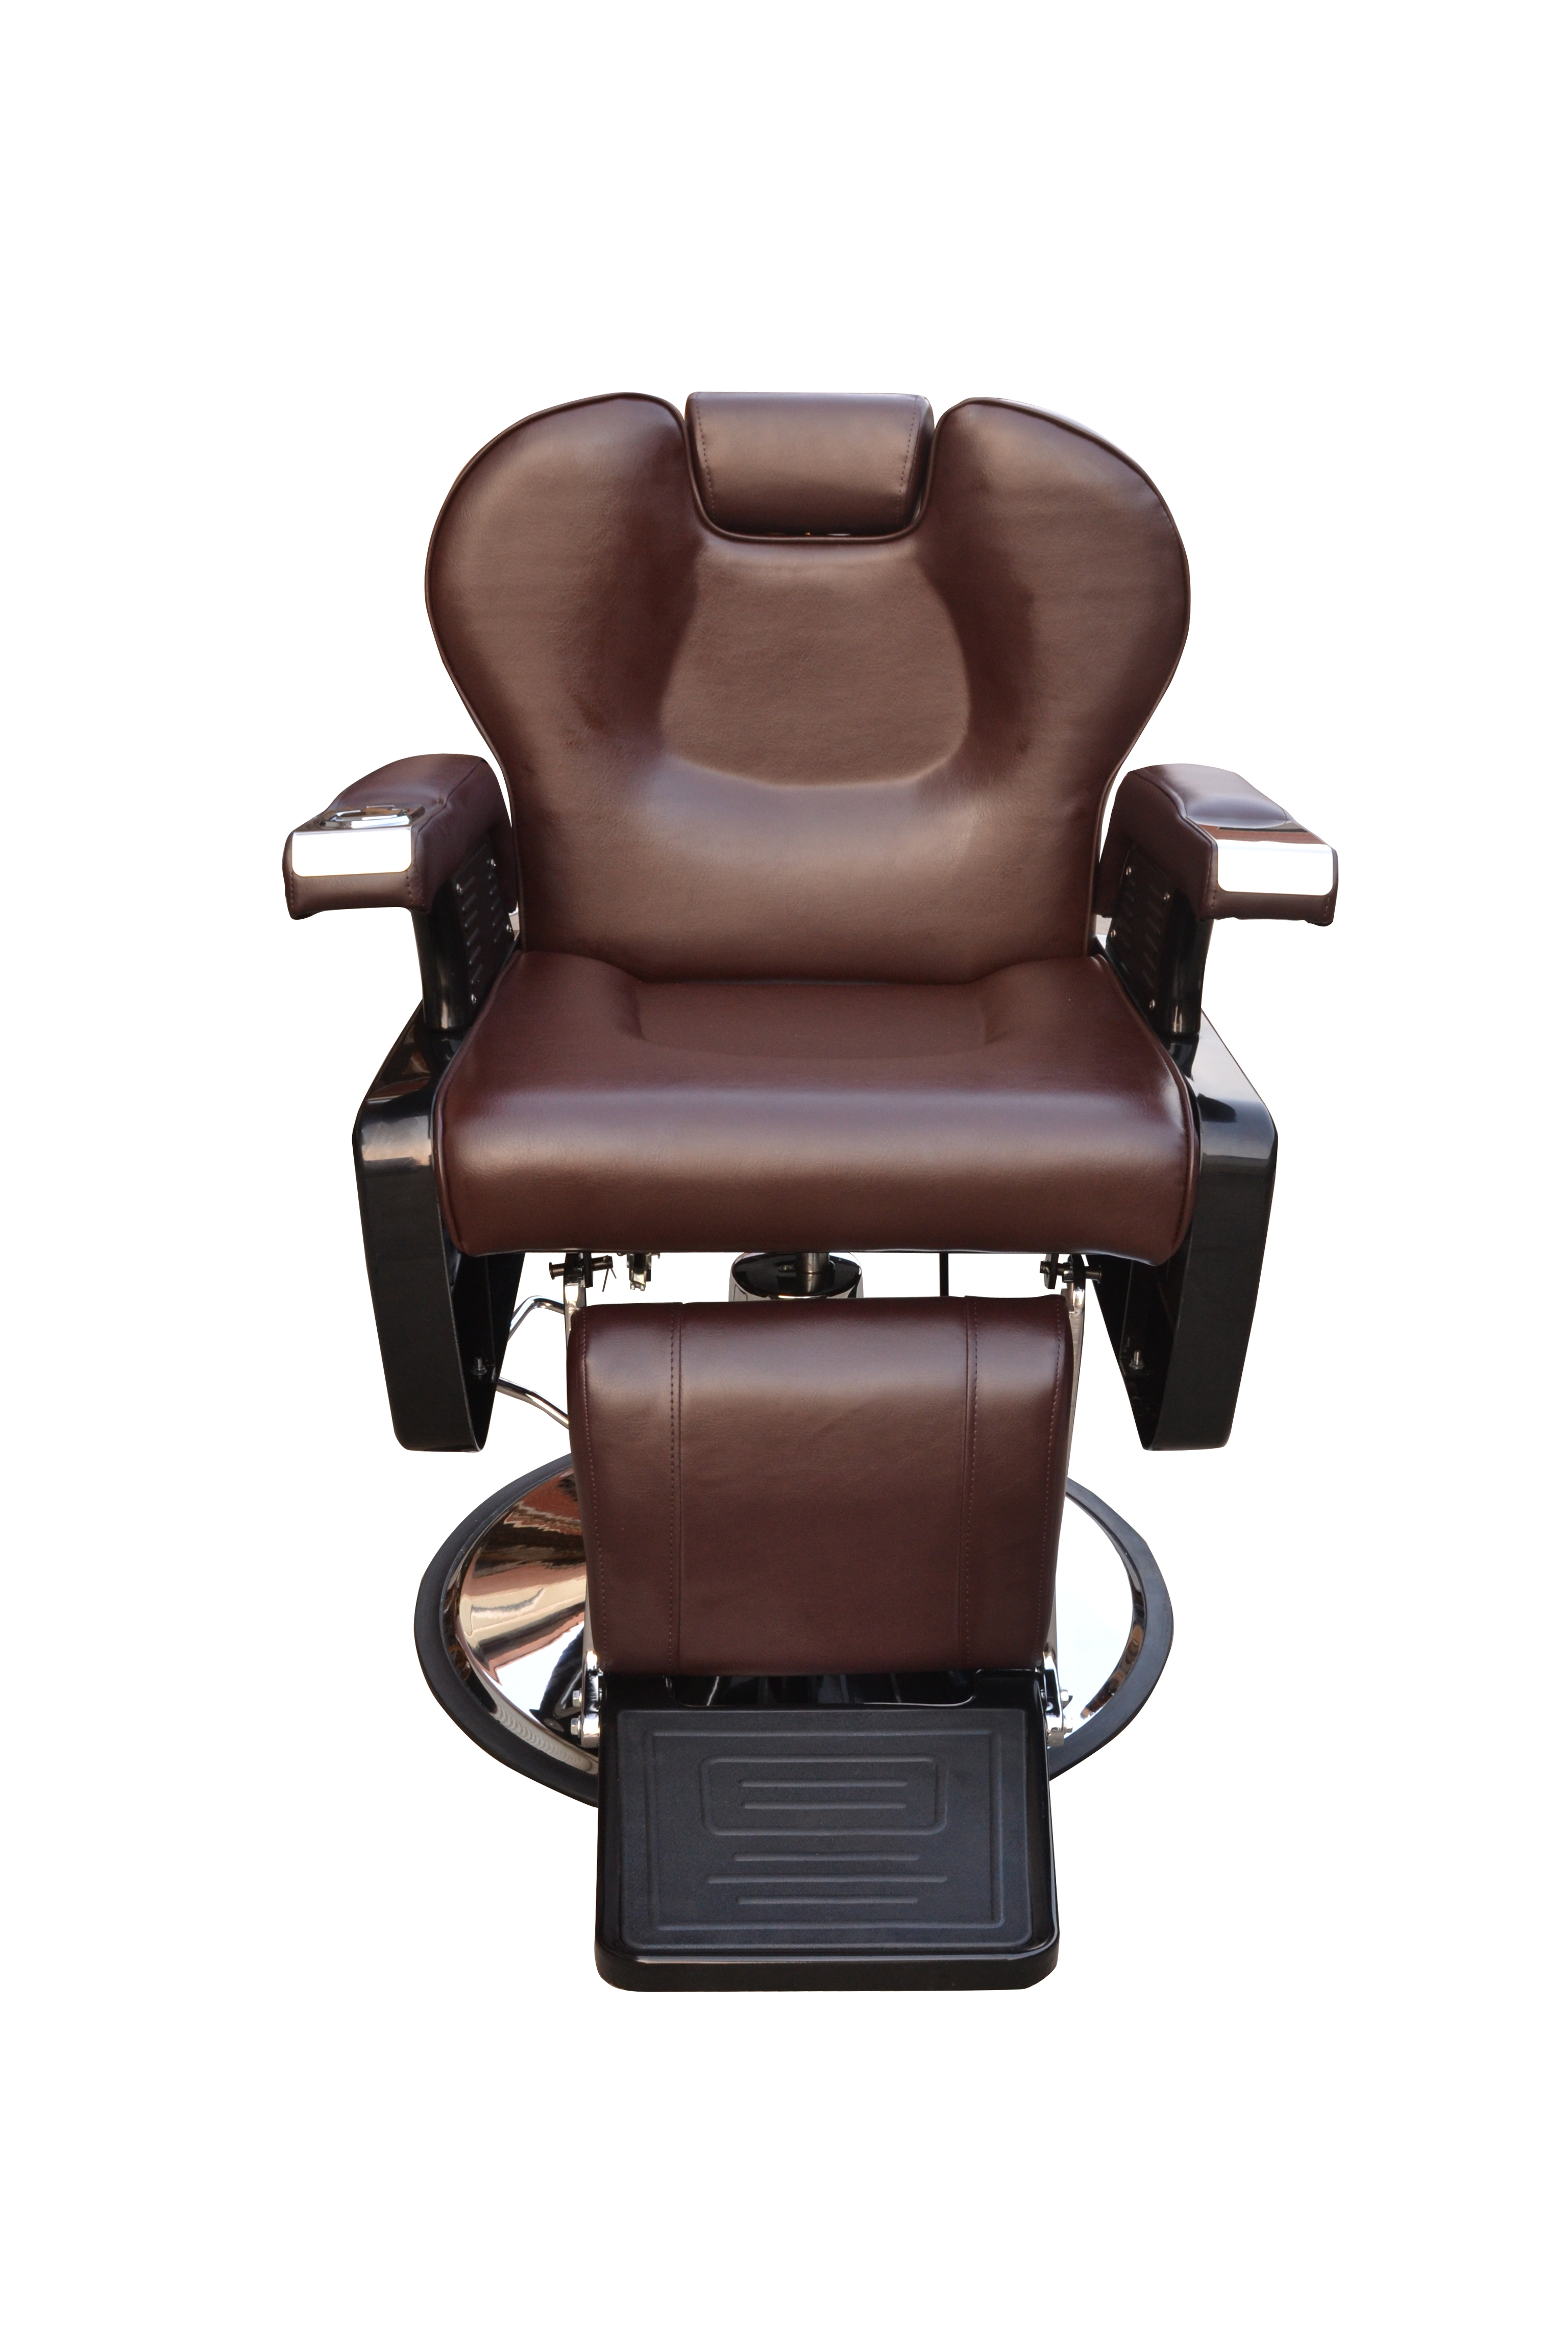 BarberPub All Purpose Hydraulic Recline Barber Chair Salon Beauty Spa 8702 Brown 12